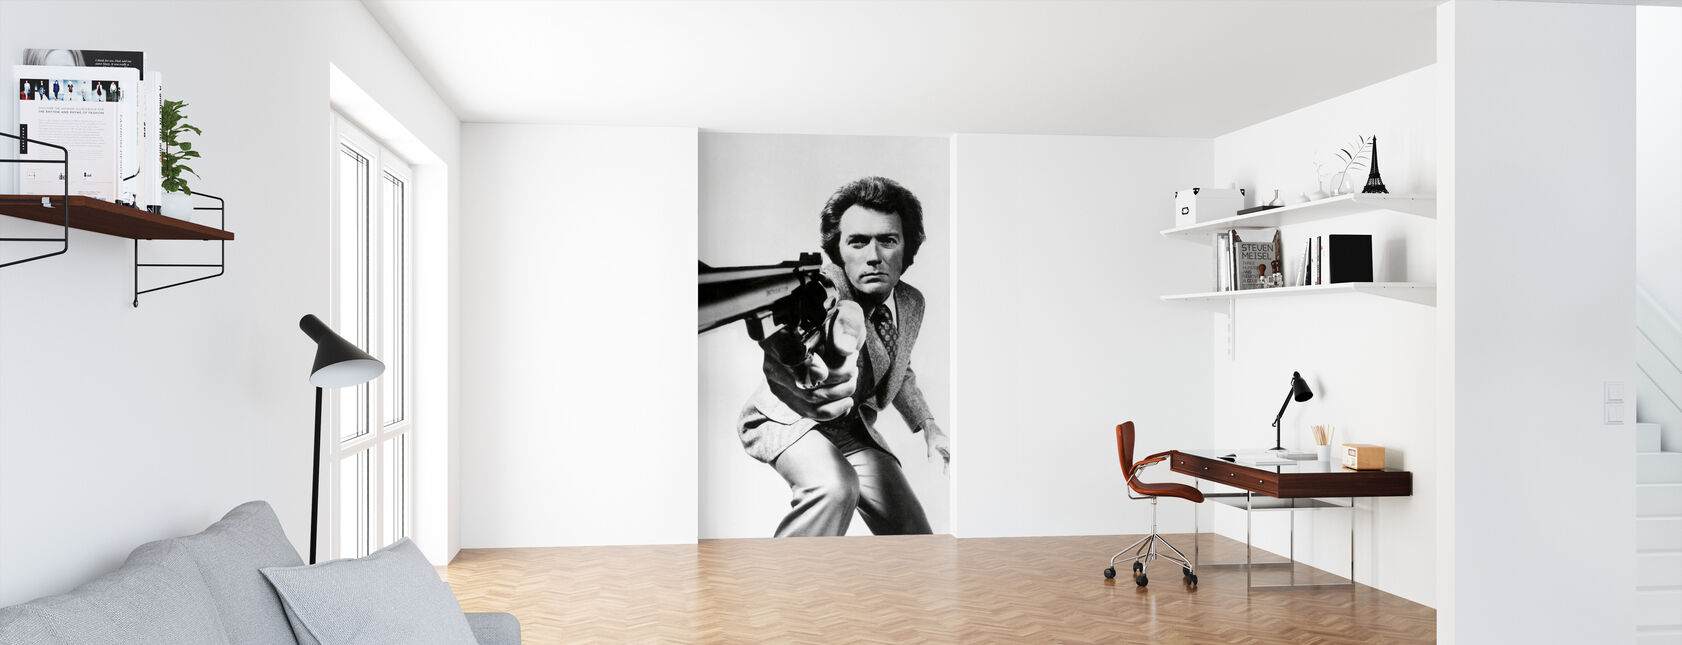 Clint Eastwood en Magnum Force - Behang - Kantoor